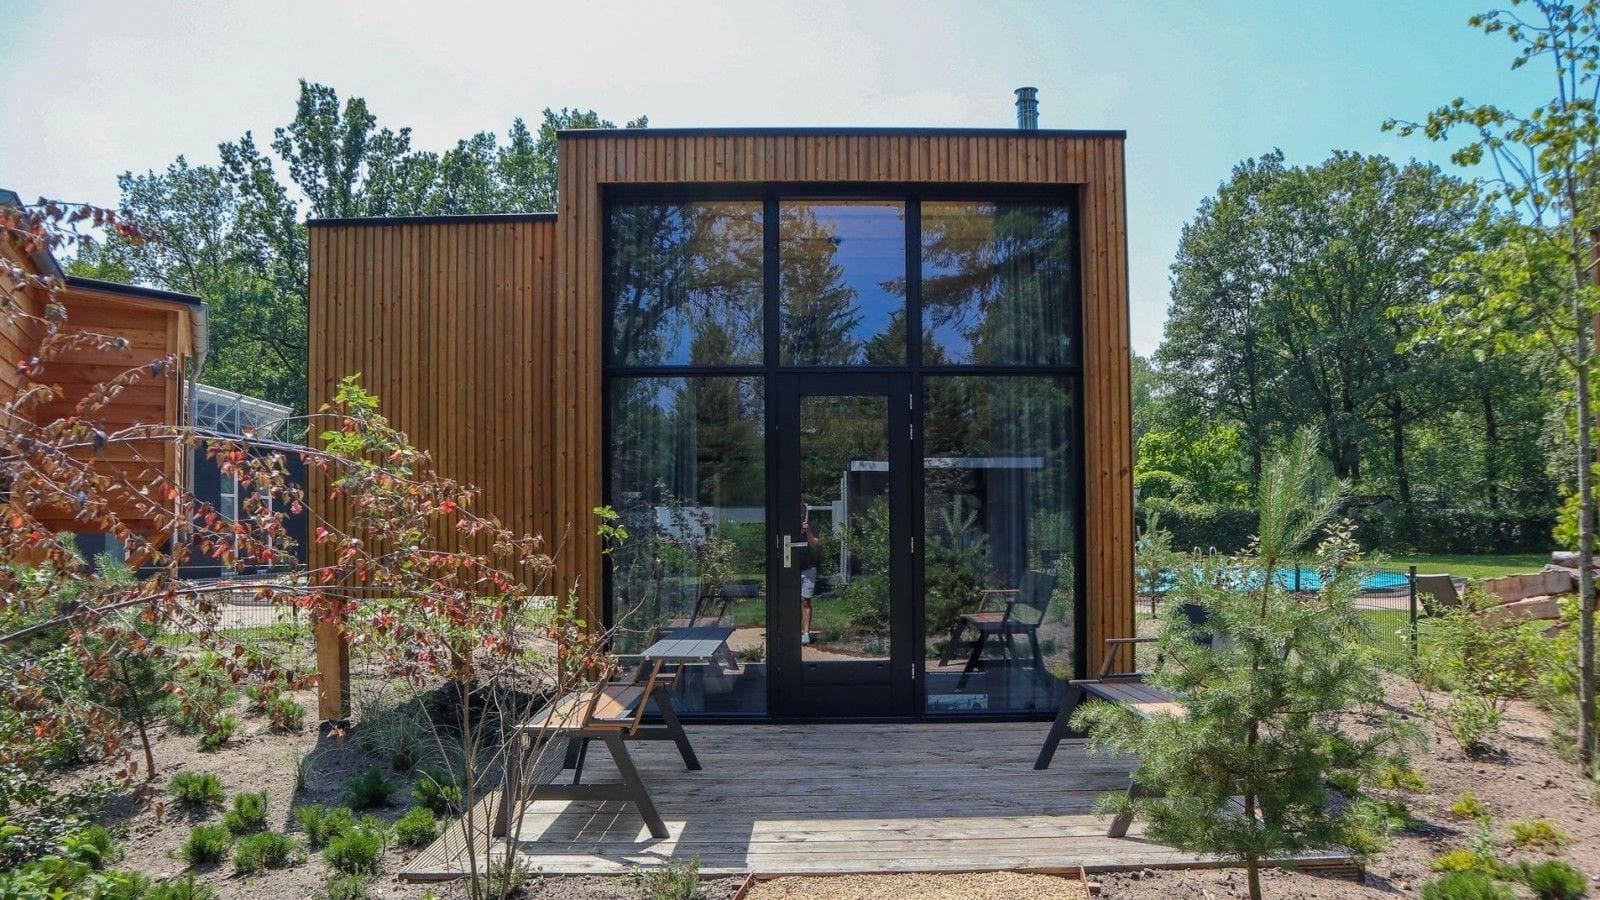 Supertrips - Tiny Houses op de Veluwe